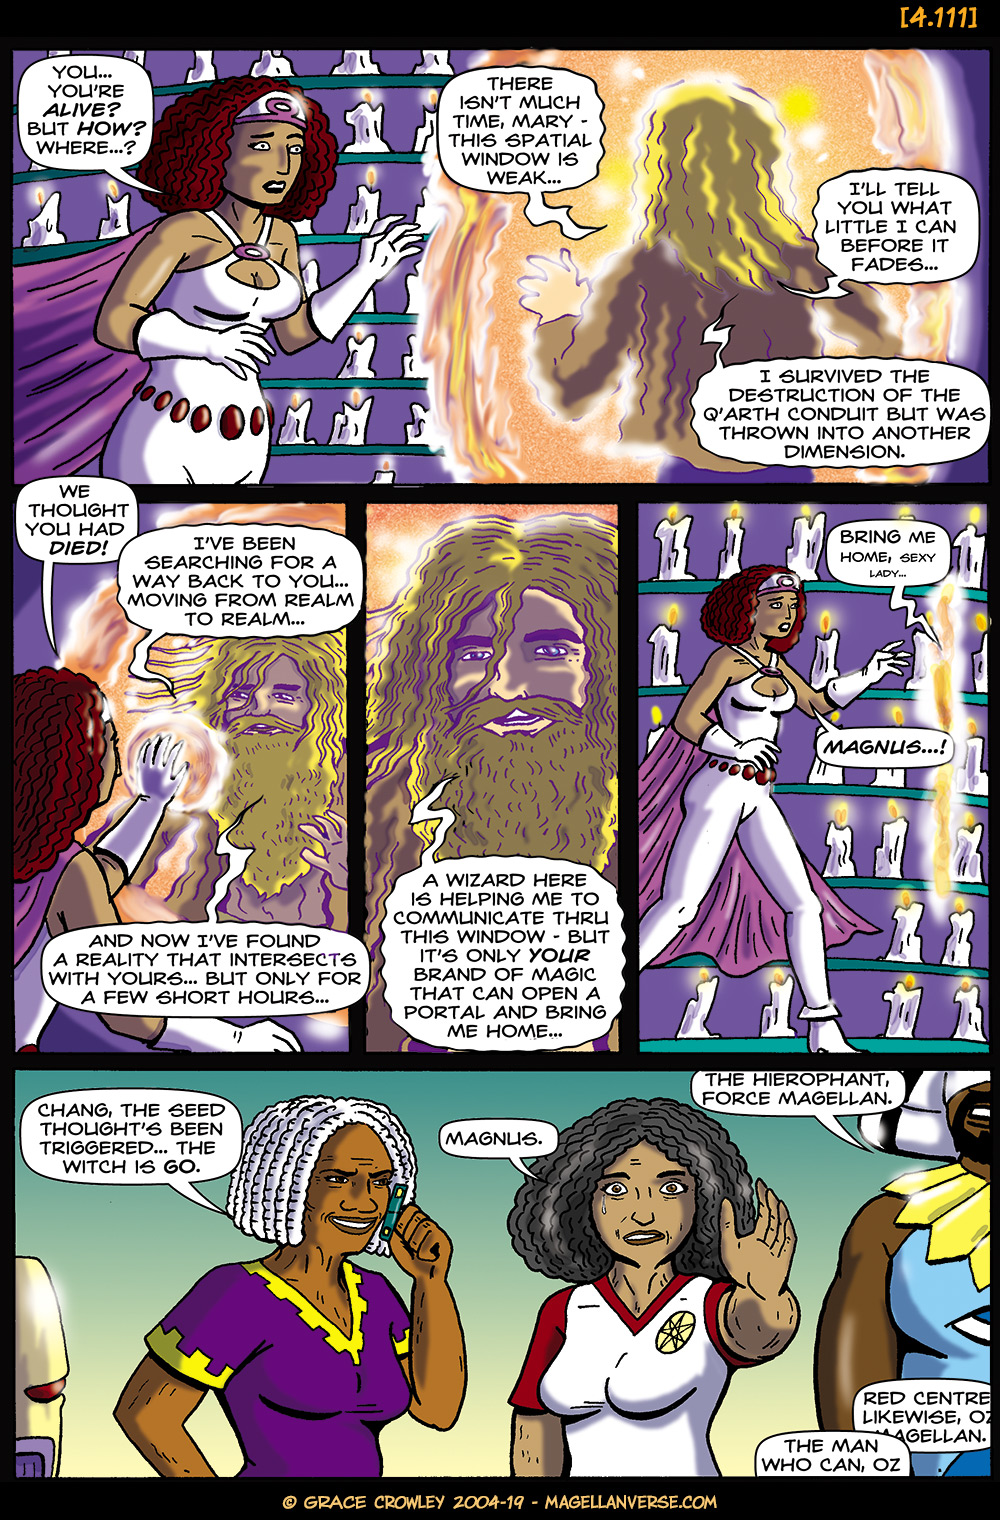 Page 4.111